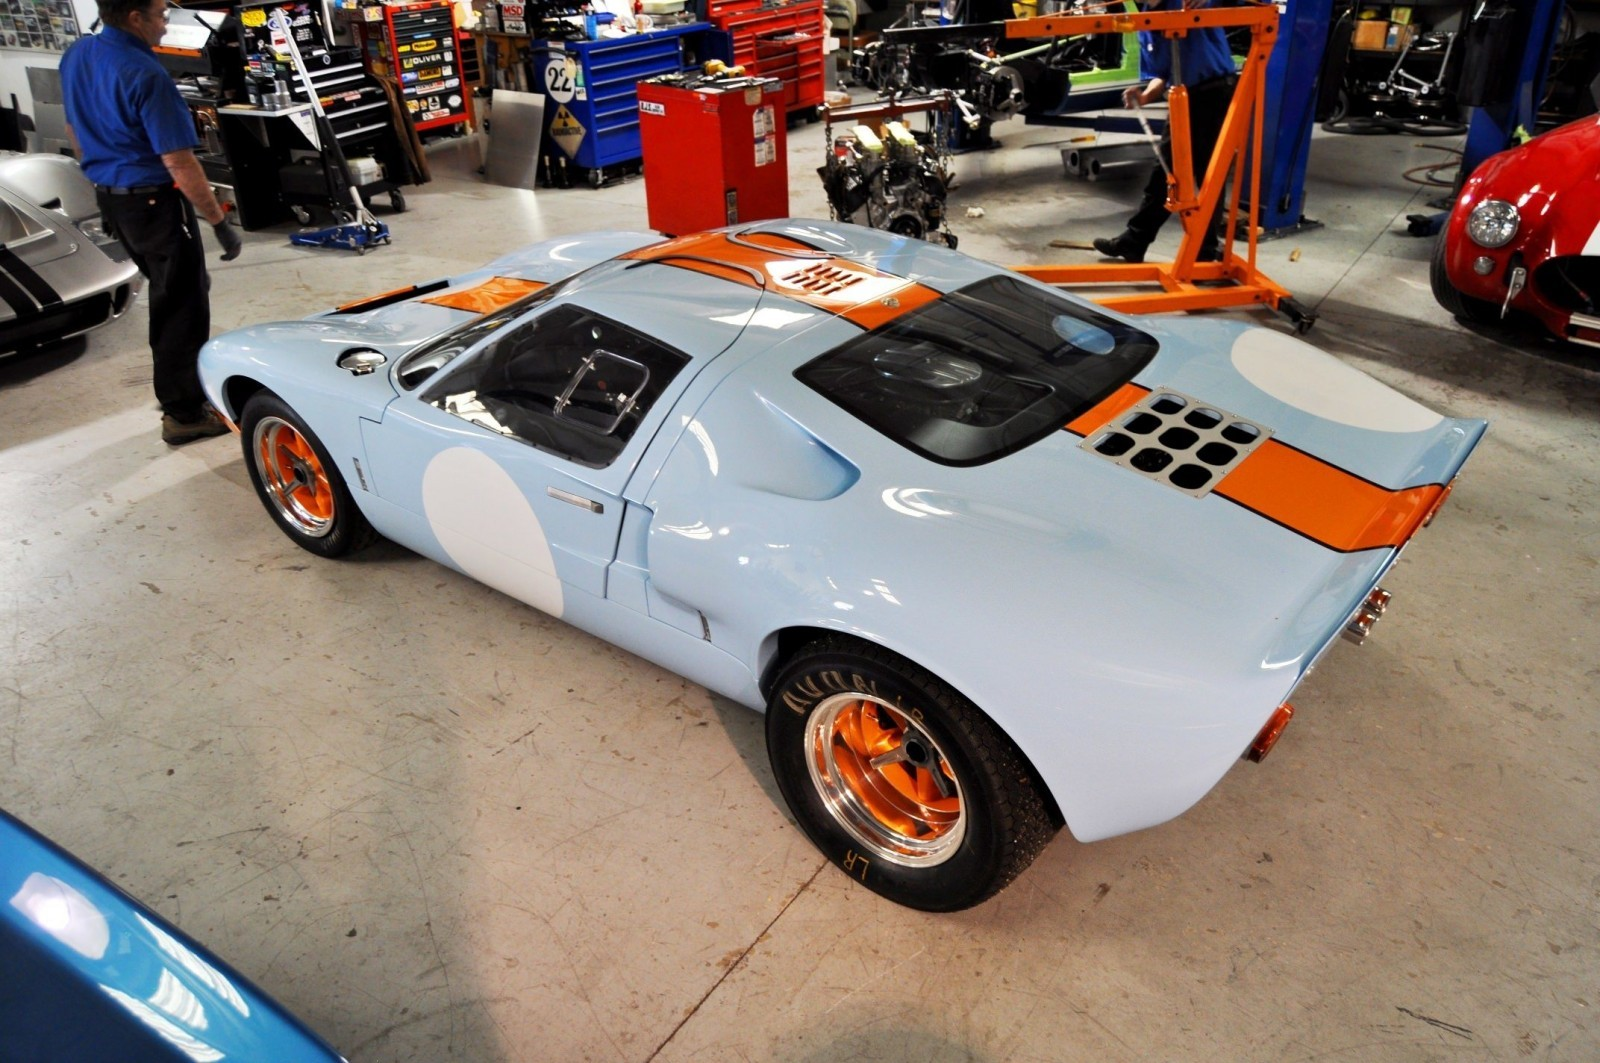 2014 Superformance GT40 Mark I - MEGA Photo Shoot and Ride-Along Videos 18